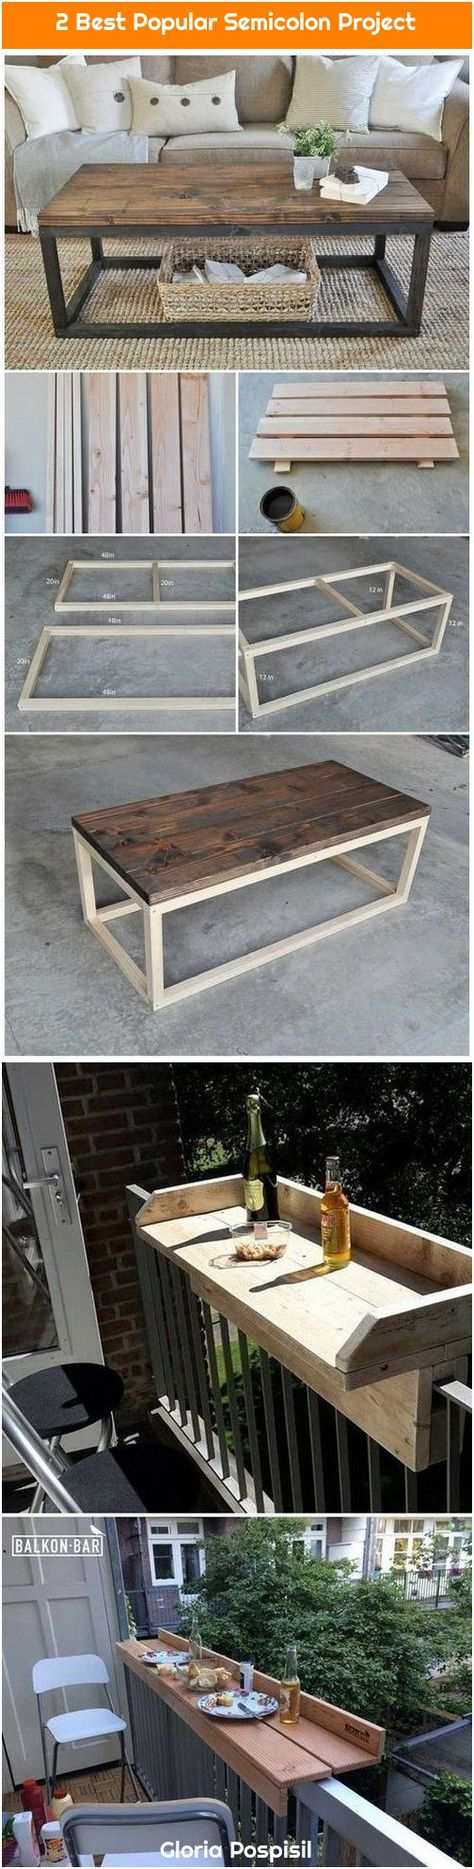 1. 31 genius diy home decor projects you will fall in love with!! 30 ⋆ aegisfilmsales.com 31 genius diy home decor projects you will fall in love with!! 30 ⋆ aegisfilmsales.com 31 Genius DIY Home Decor Projects You Will Fall in Love with!! #diyhomedecor #geniusdiyhome #homedecorprojects ⋆ aegisfilmsales.com 2. Cheap DIY Projects For Your Home […]